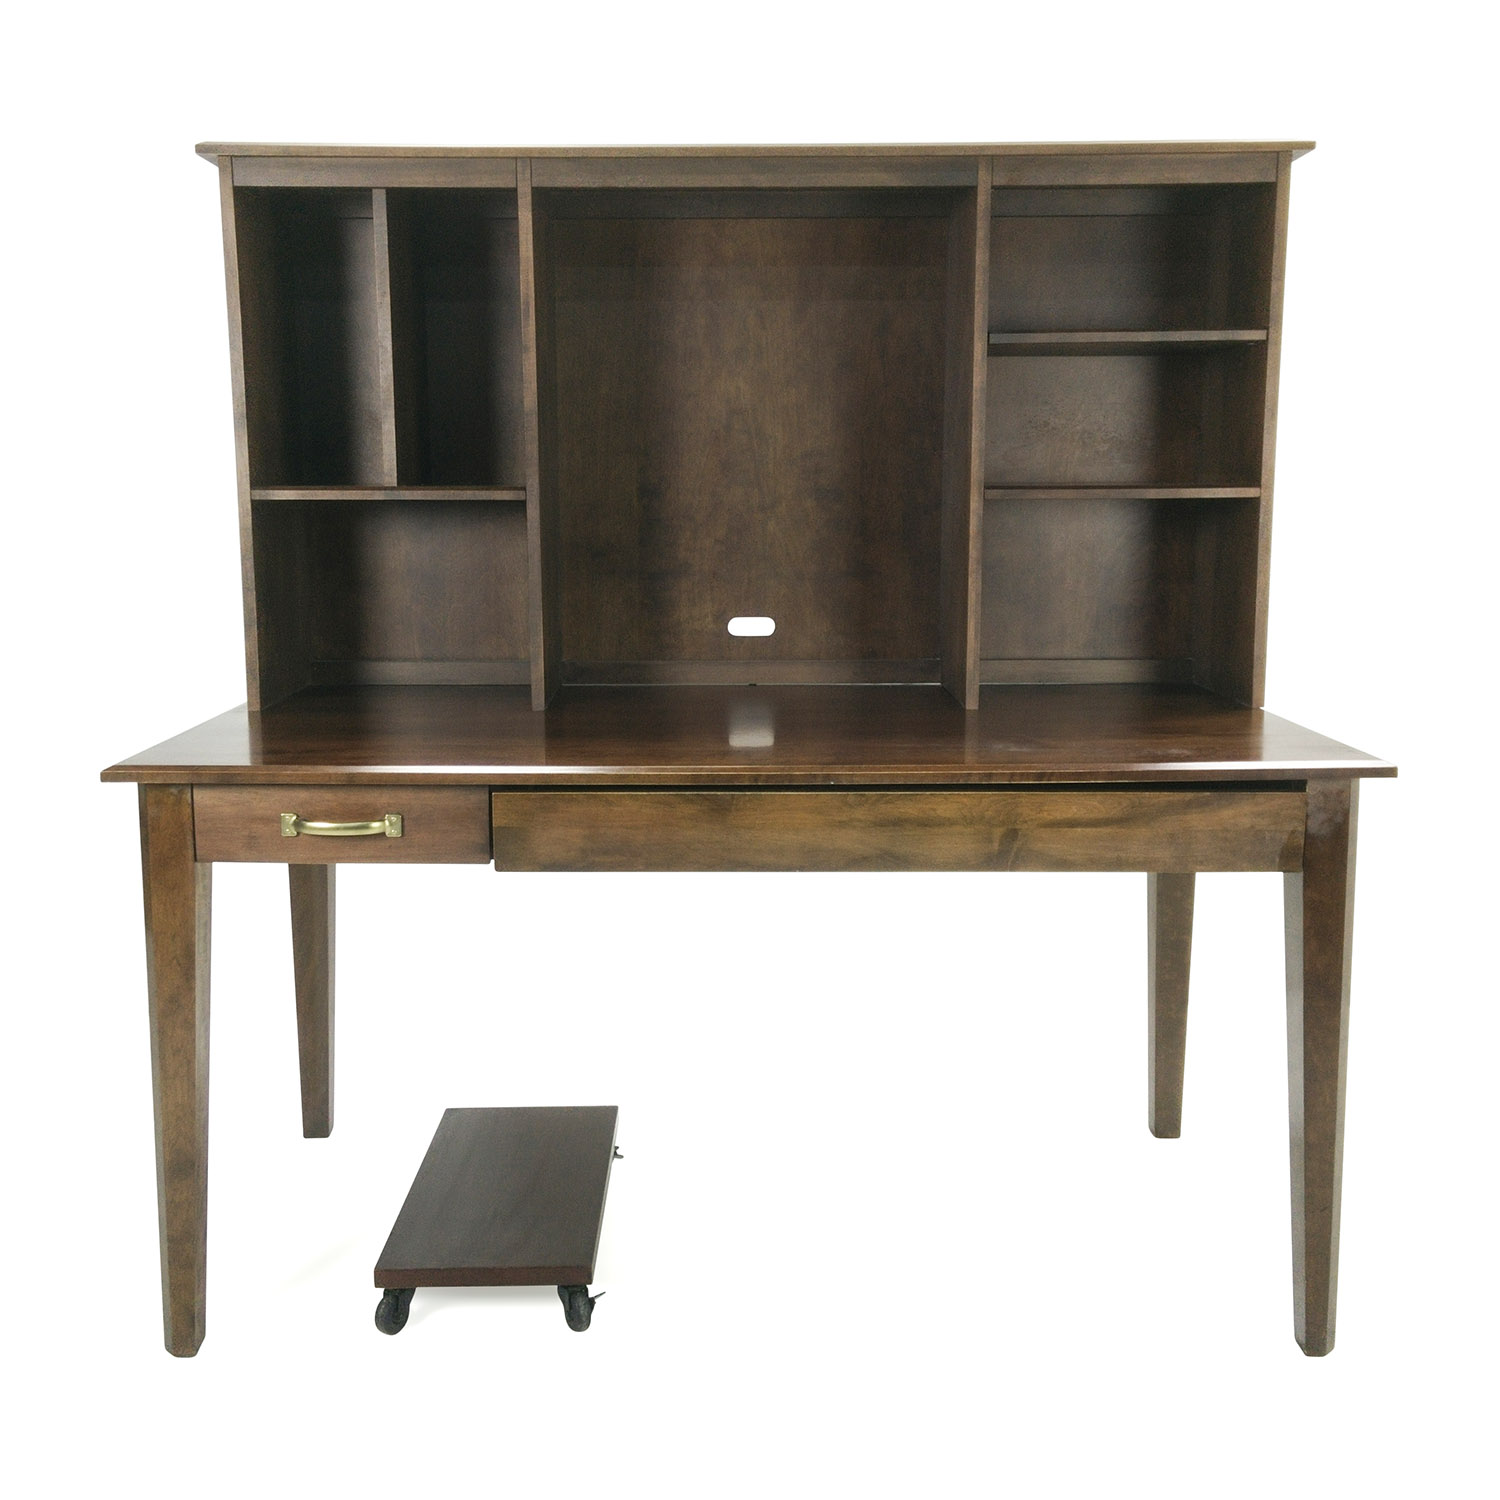 Crate & Barrel Desk and Hutch / Home Office Desks